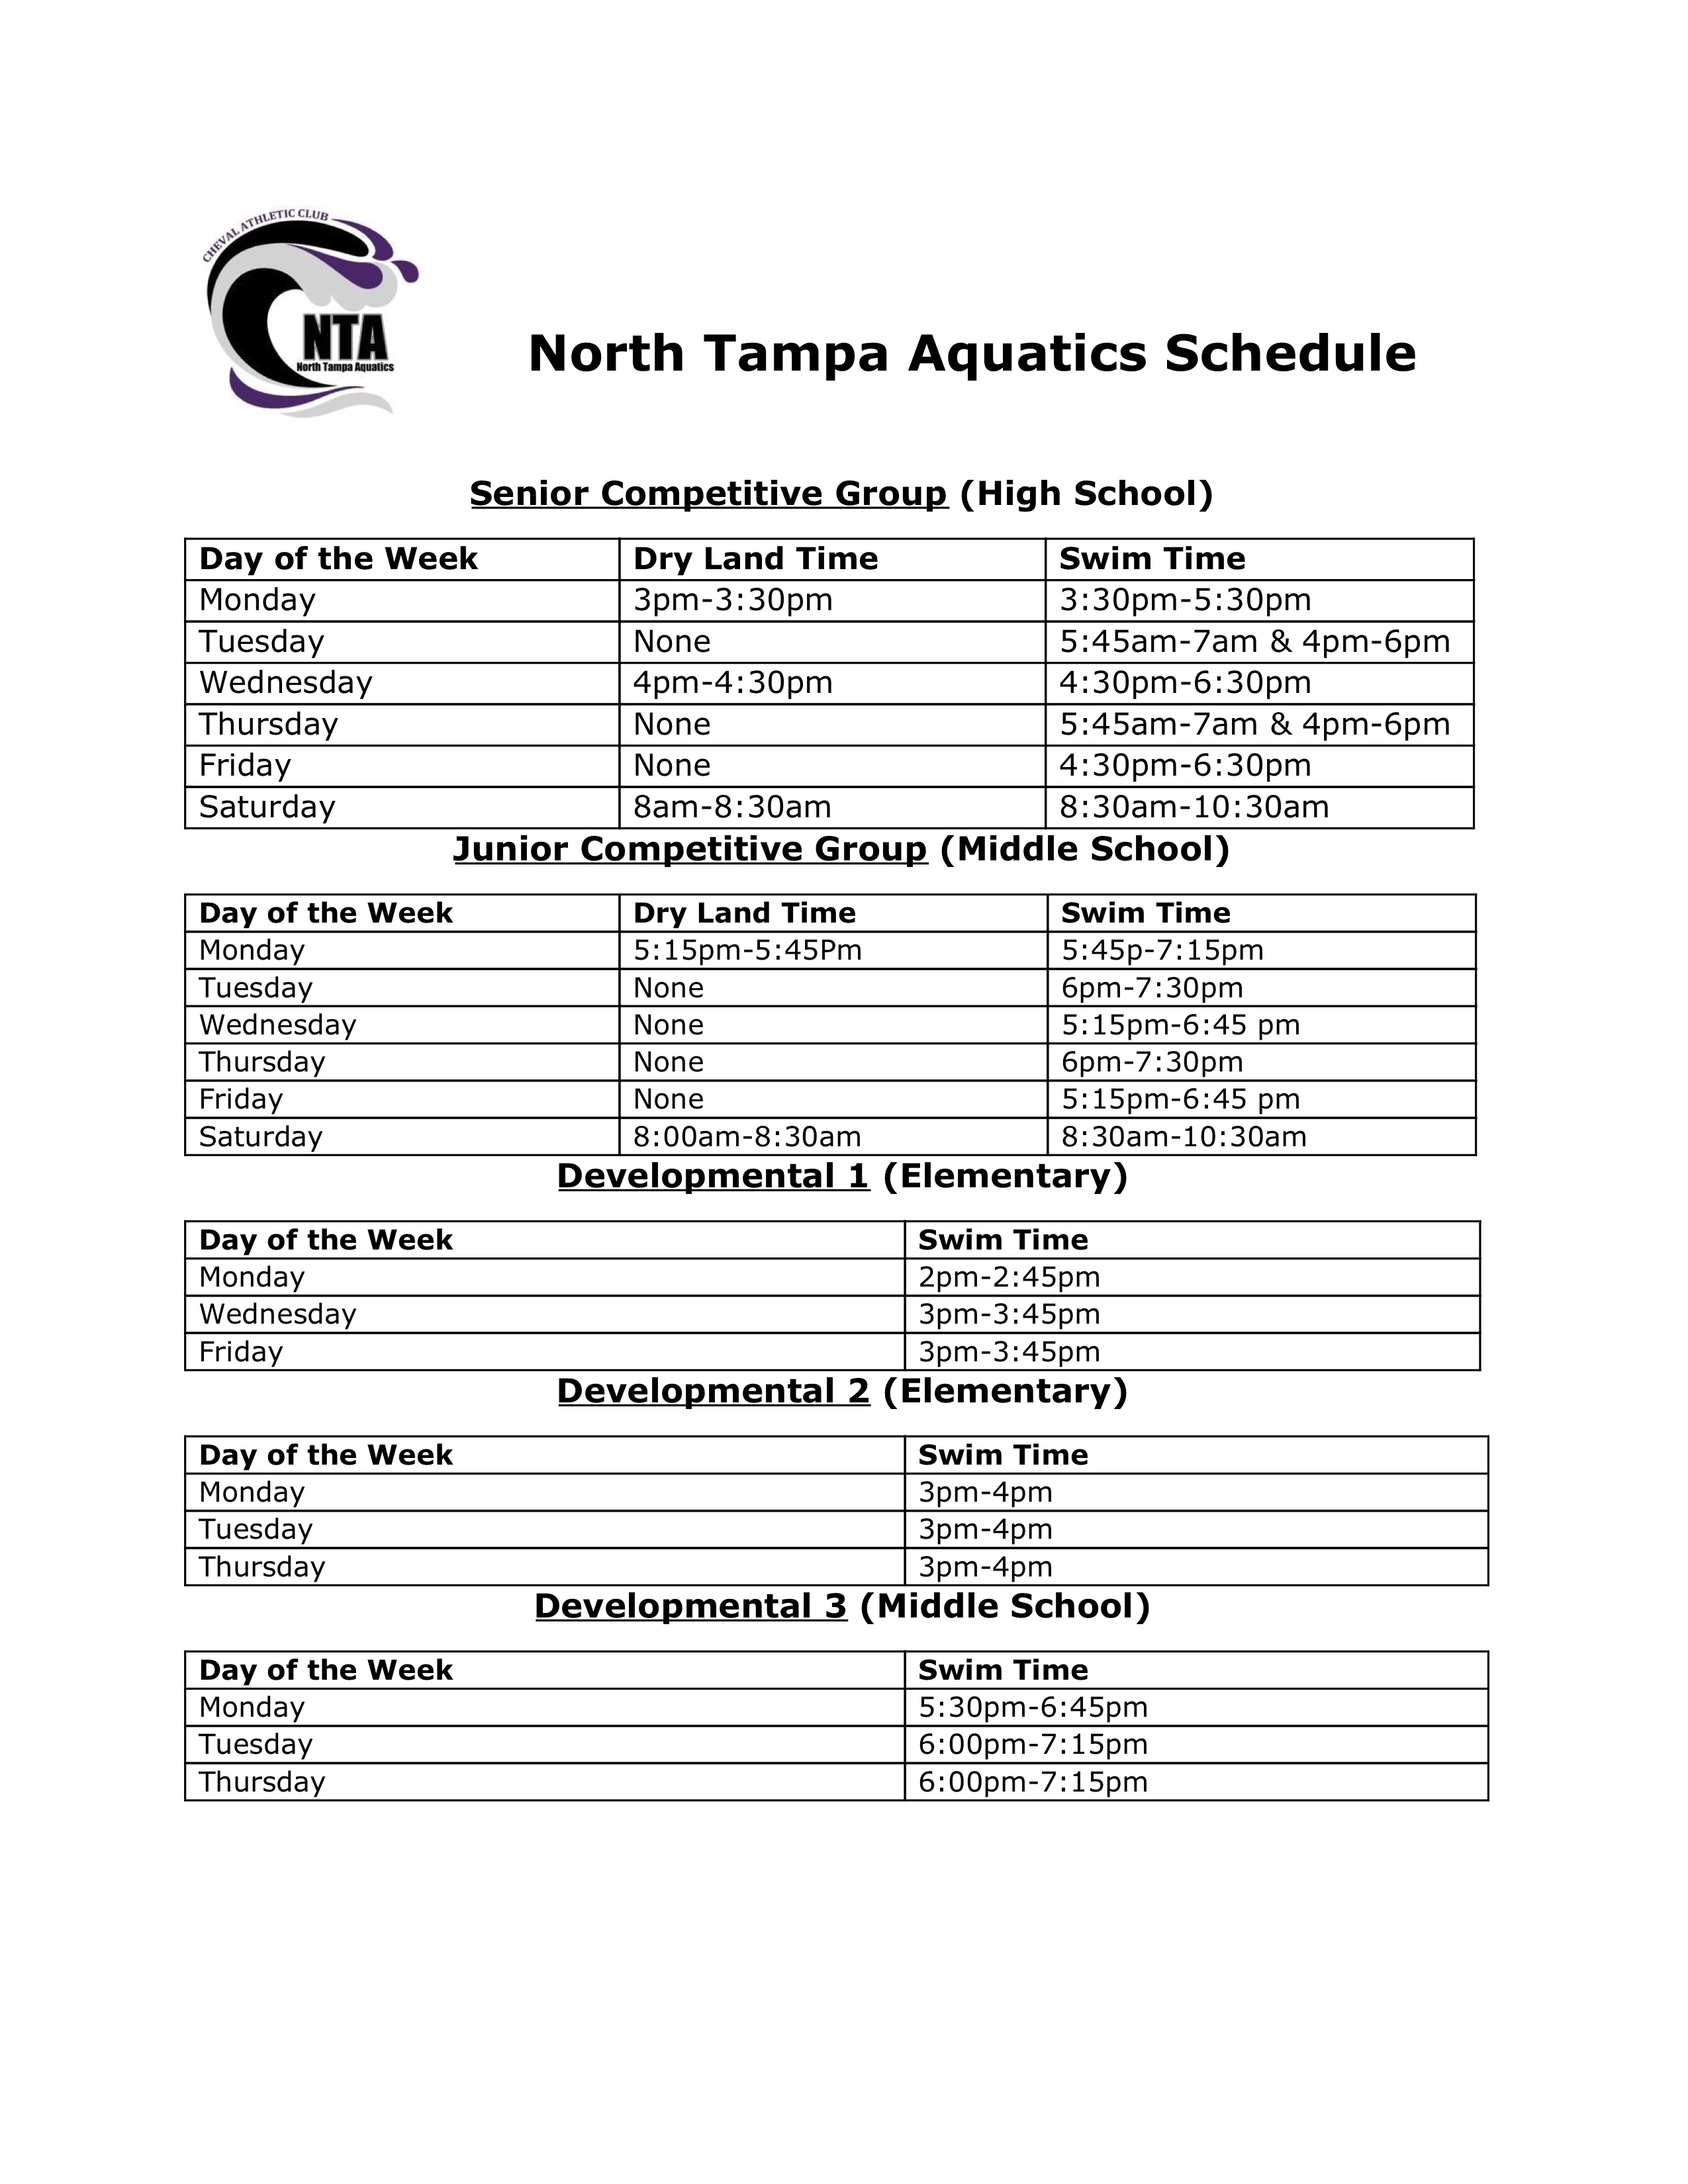 North Tampa Aquatics, Swim Tampa, Cheval Aquatics